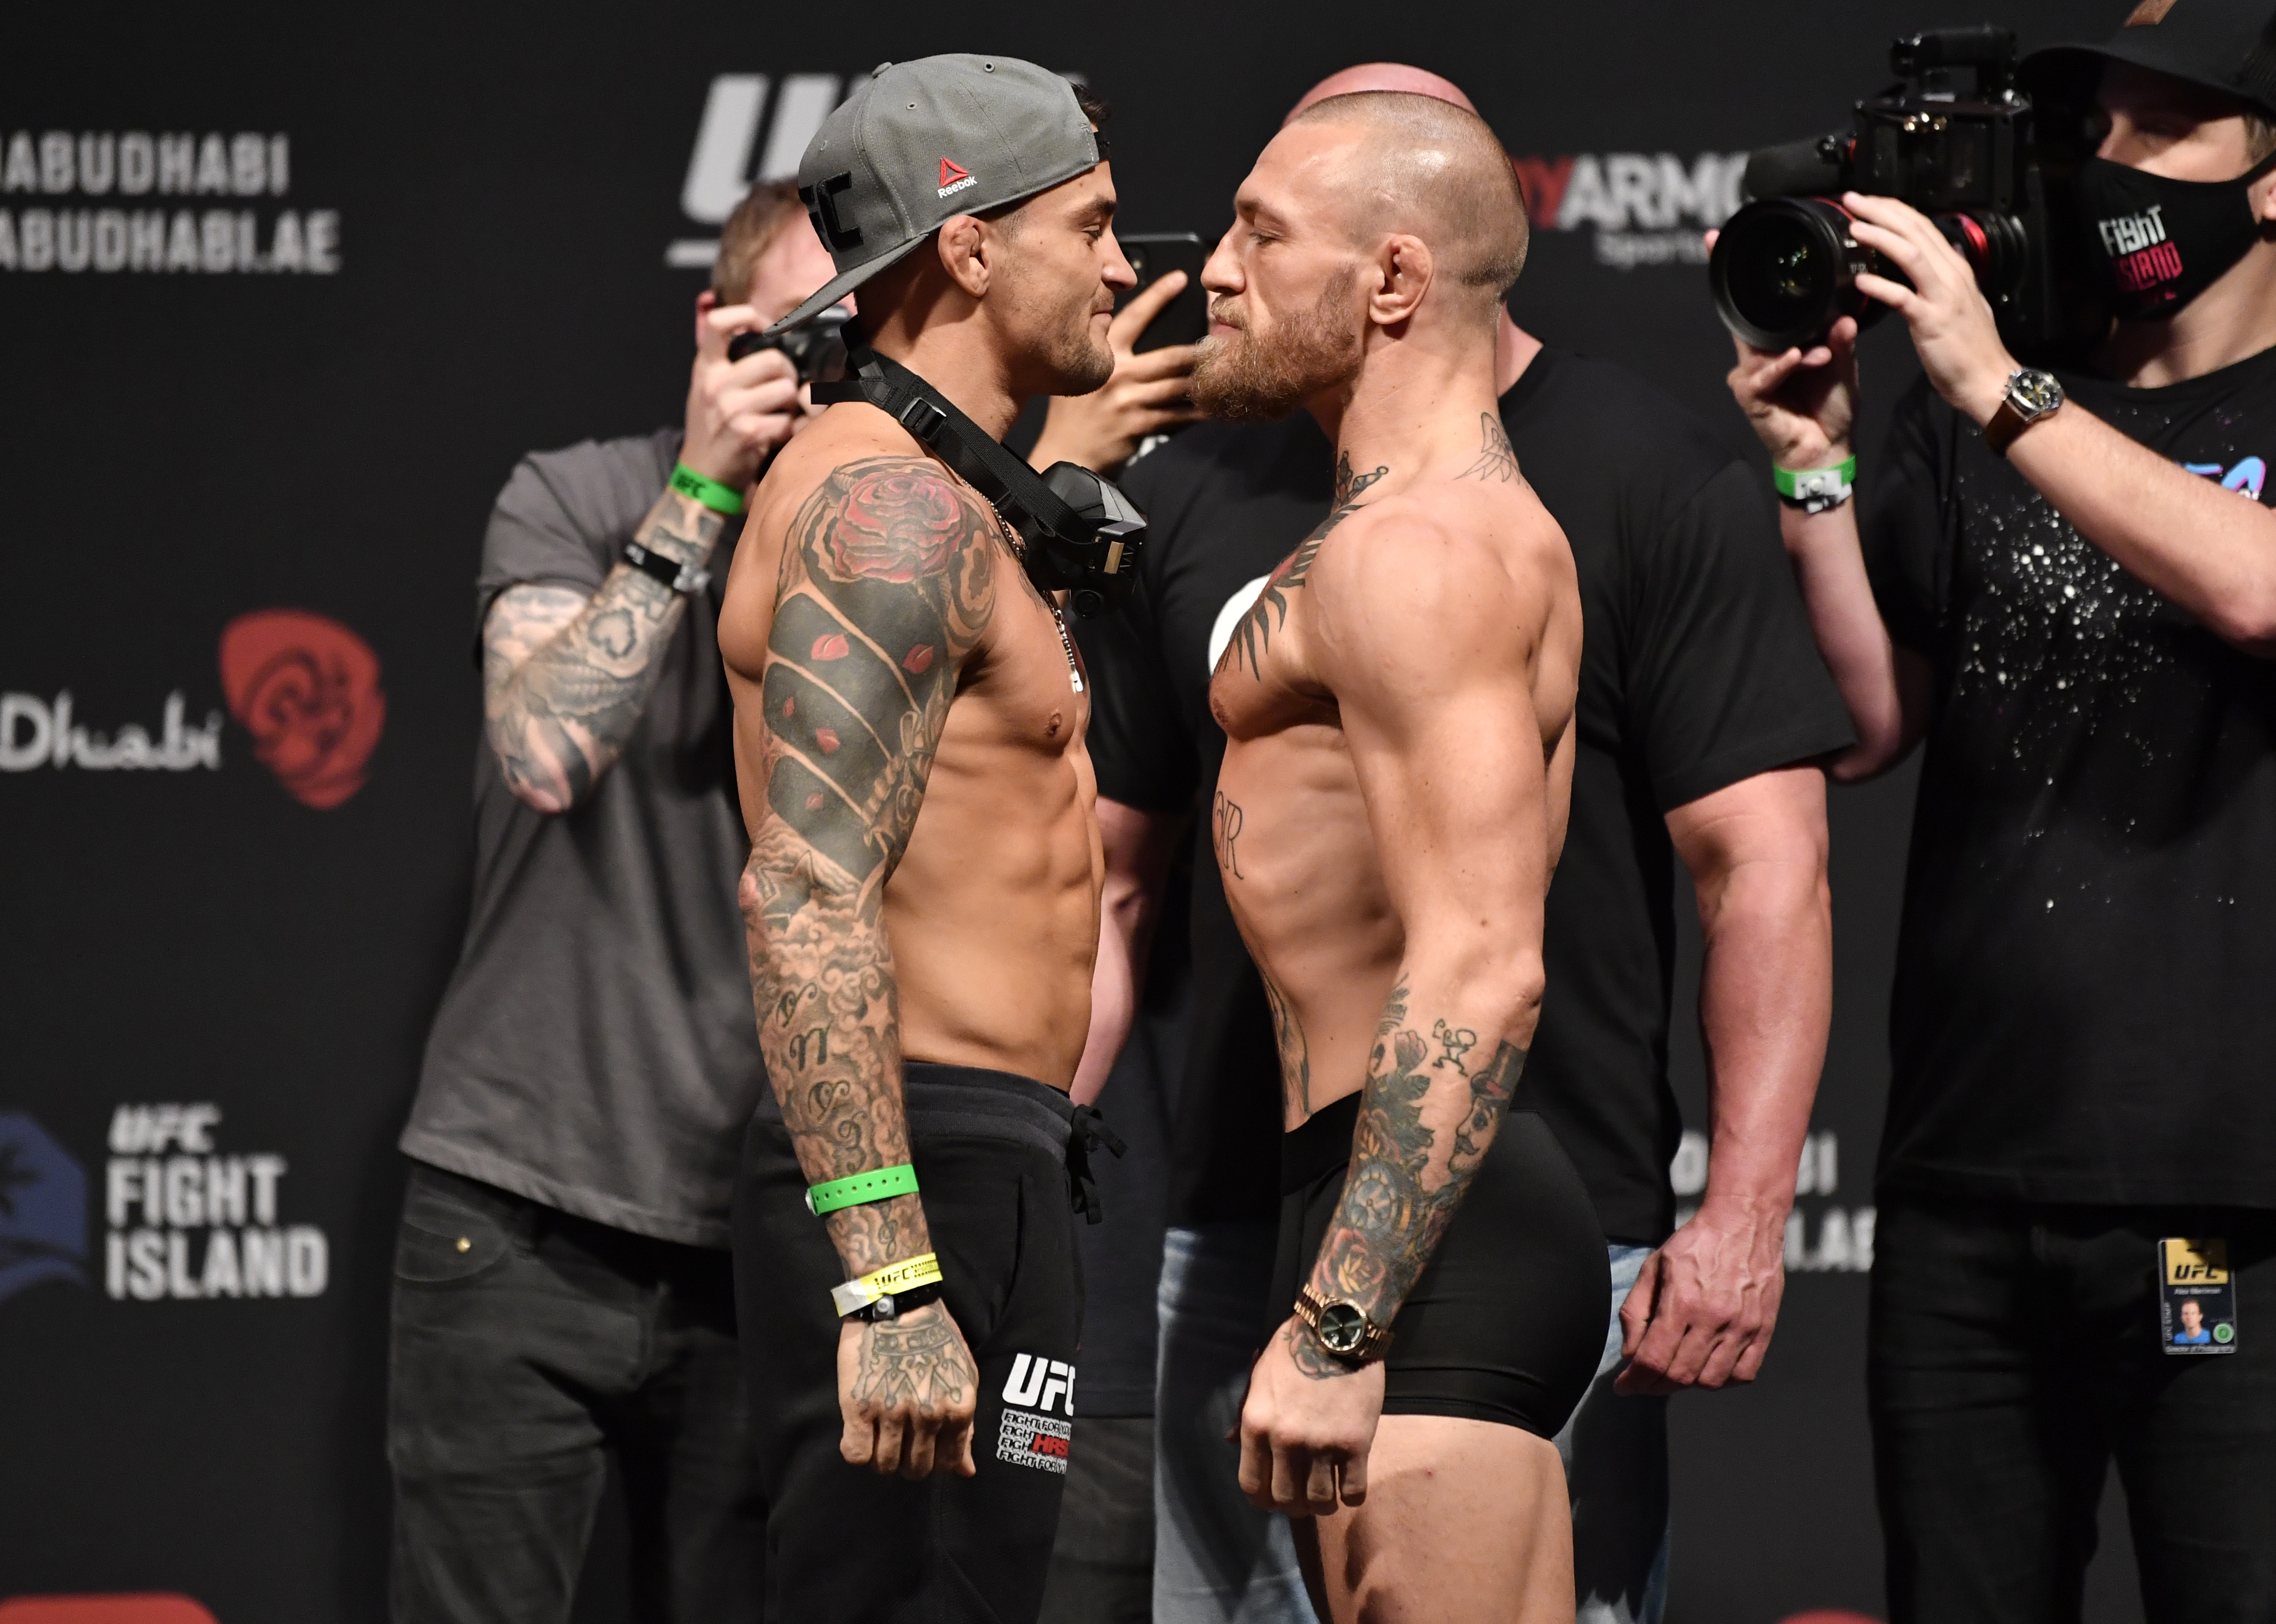 Conor McGregor vs. Dustin Poirier: UFC Fans Are Asking for Refunds From ESPN and Donating It to Dustin's Charity